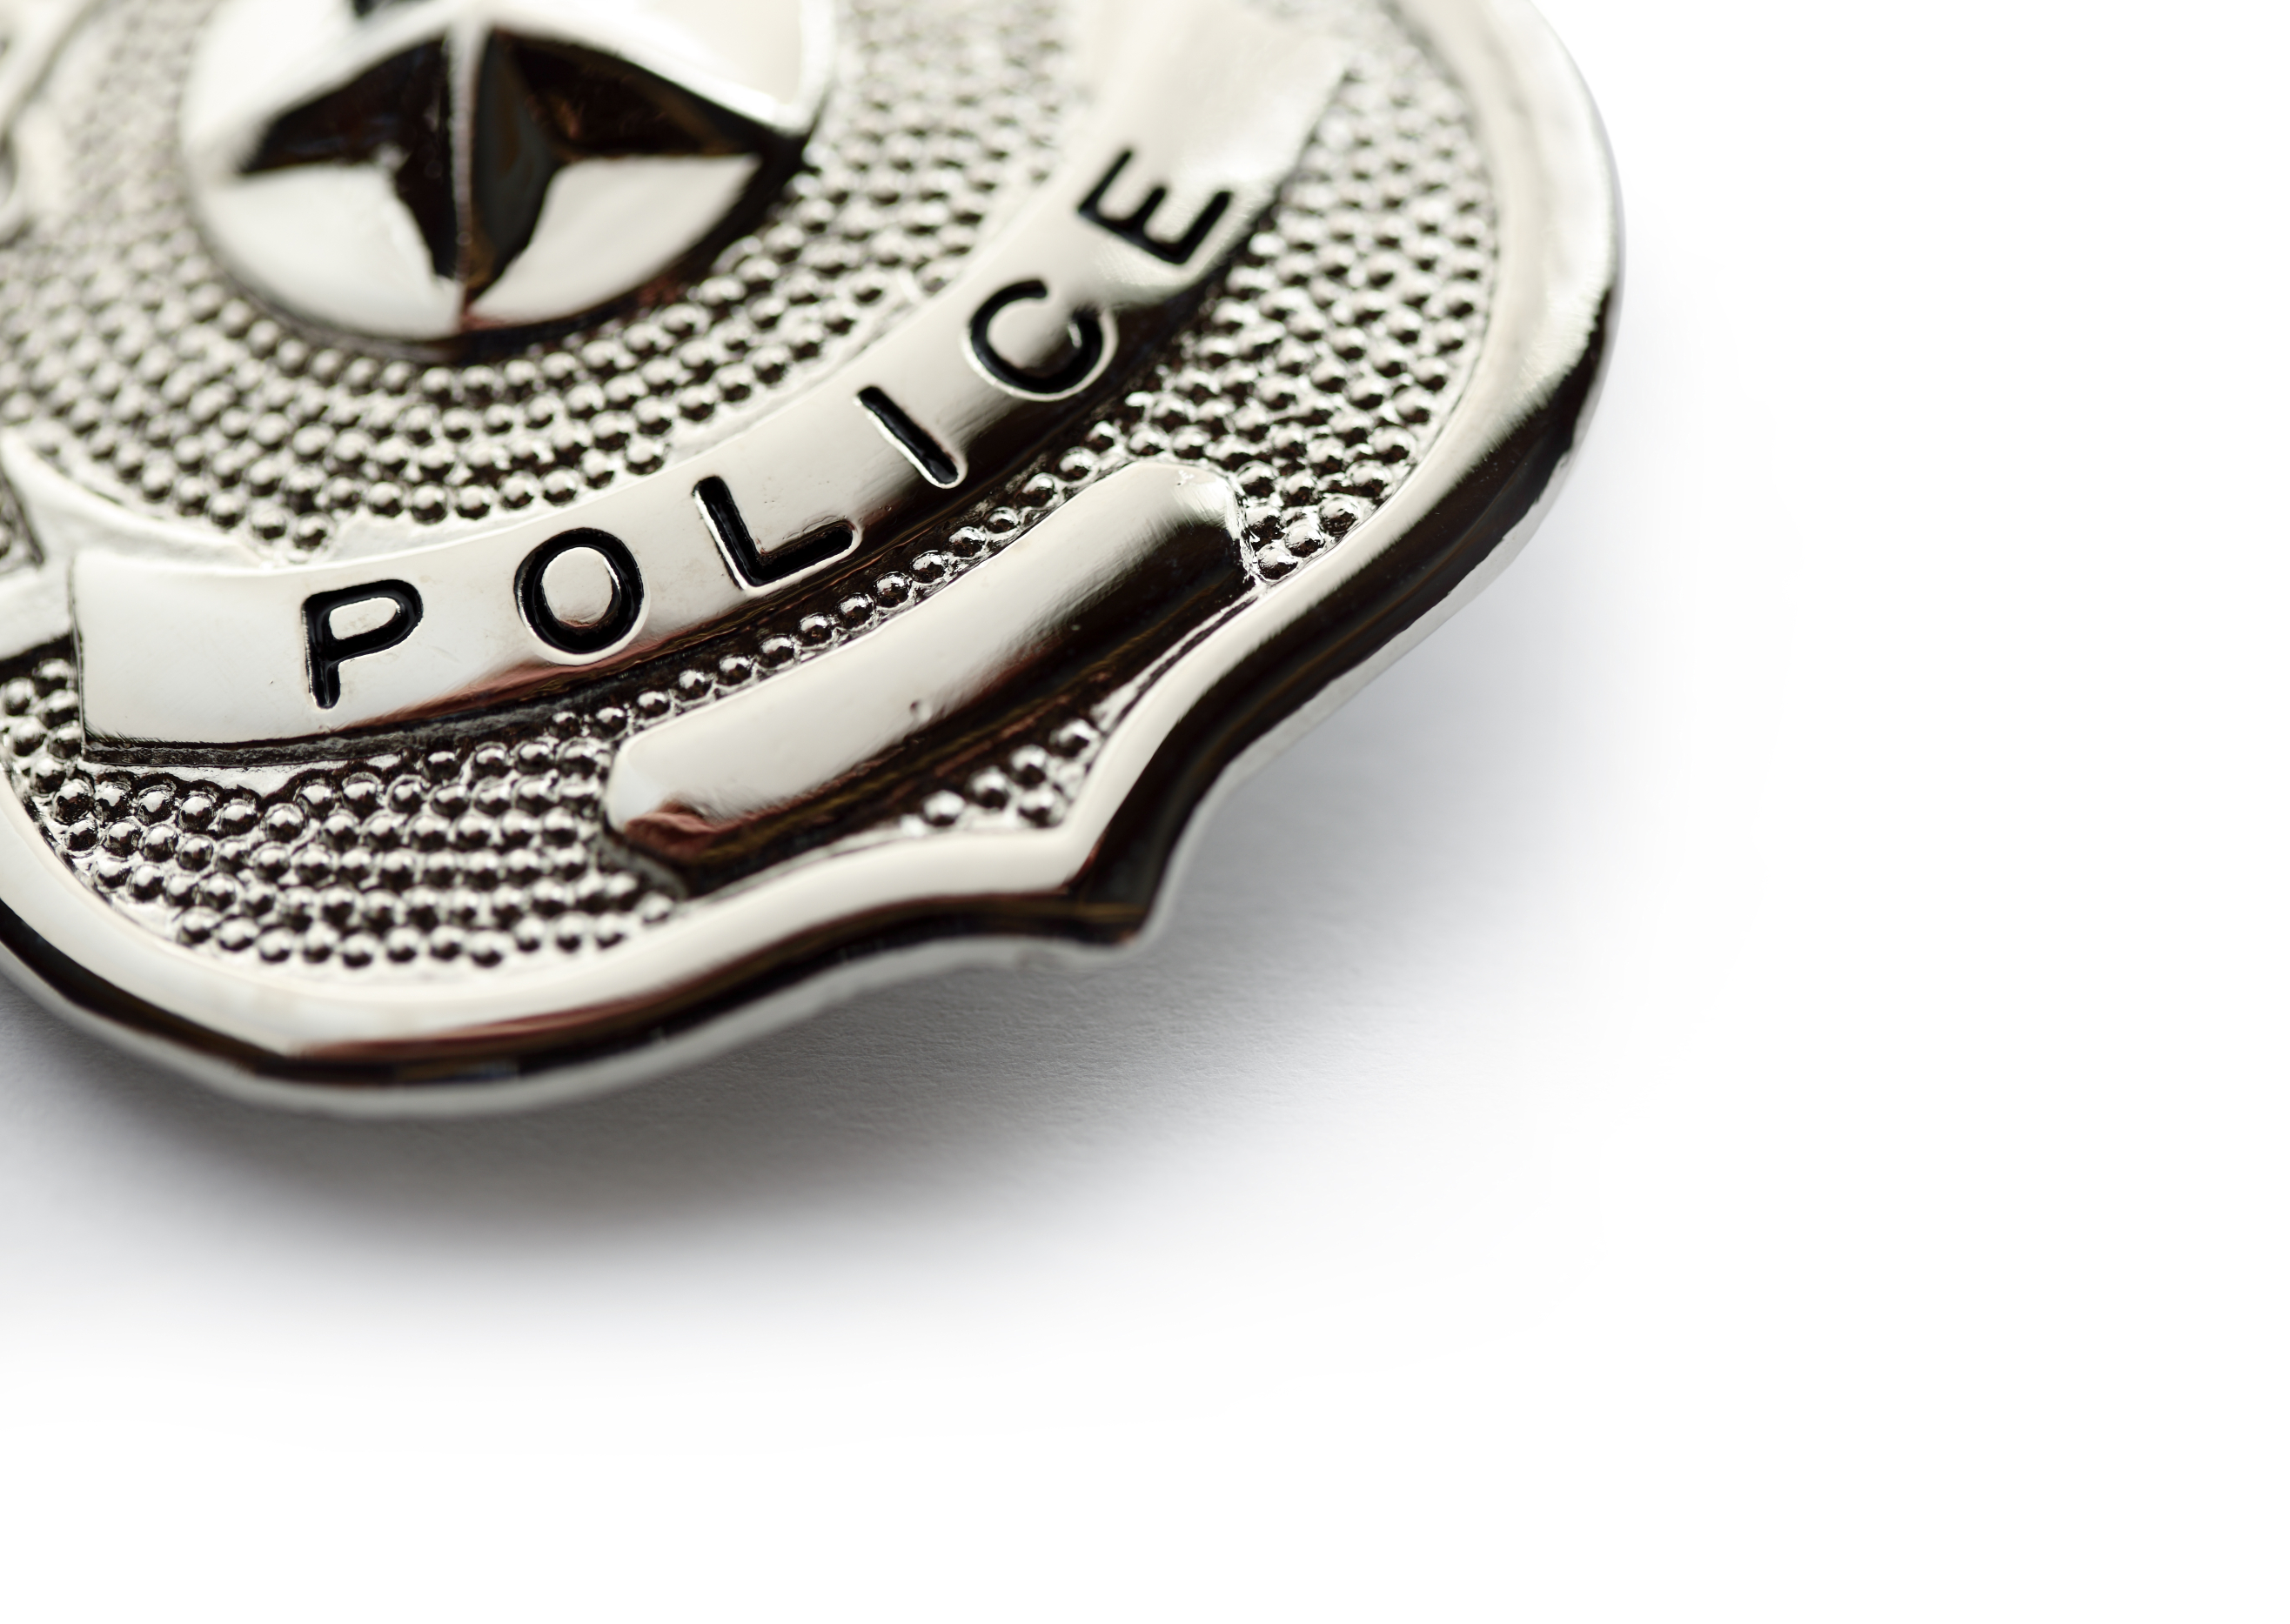 Badge in an Article About Community Policing and the COPS Grant